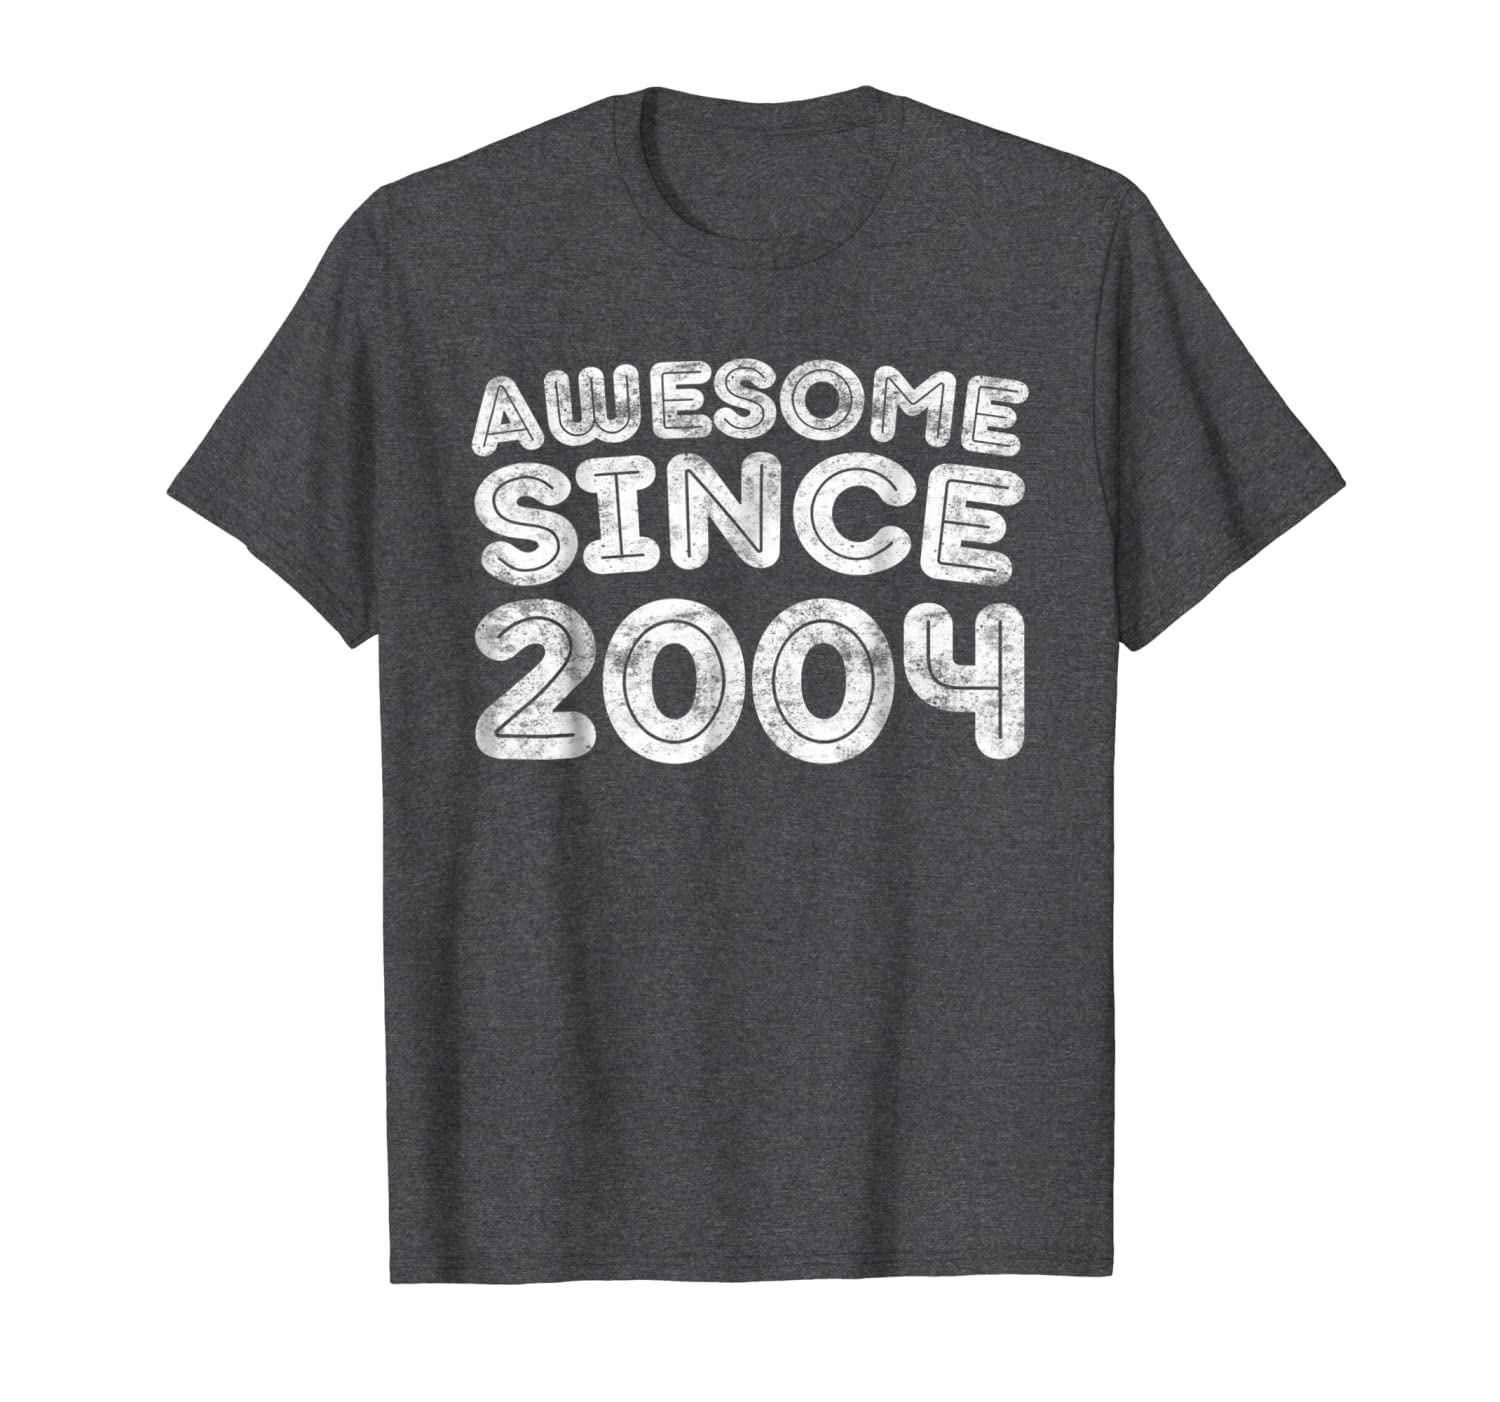 41a371f2 Amazon.com: Awesome Since 2004 T-Shirt 15th Birthday Gift Shirt: Clothing